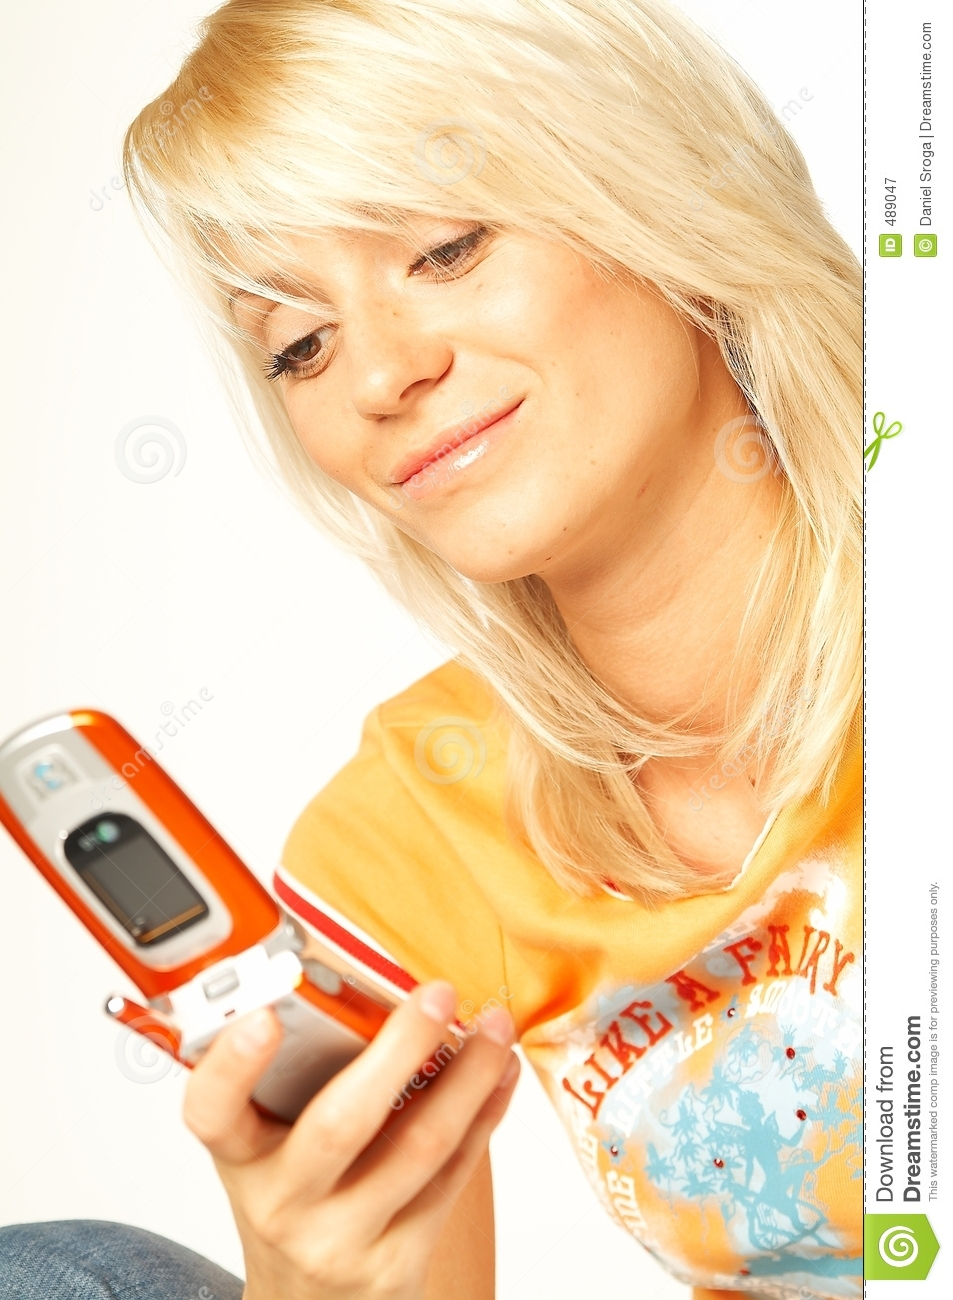 Blonde Girl With Cell Phone Stock Image - Image of phone